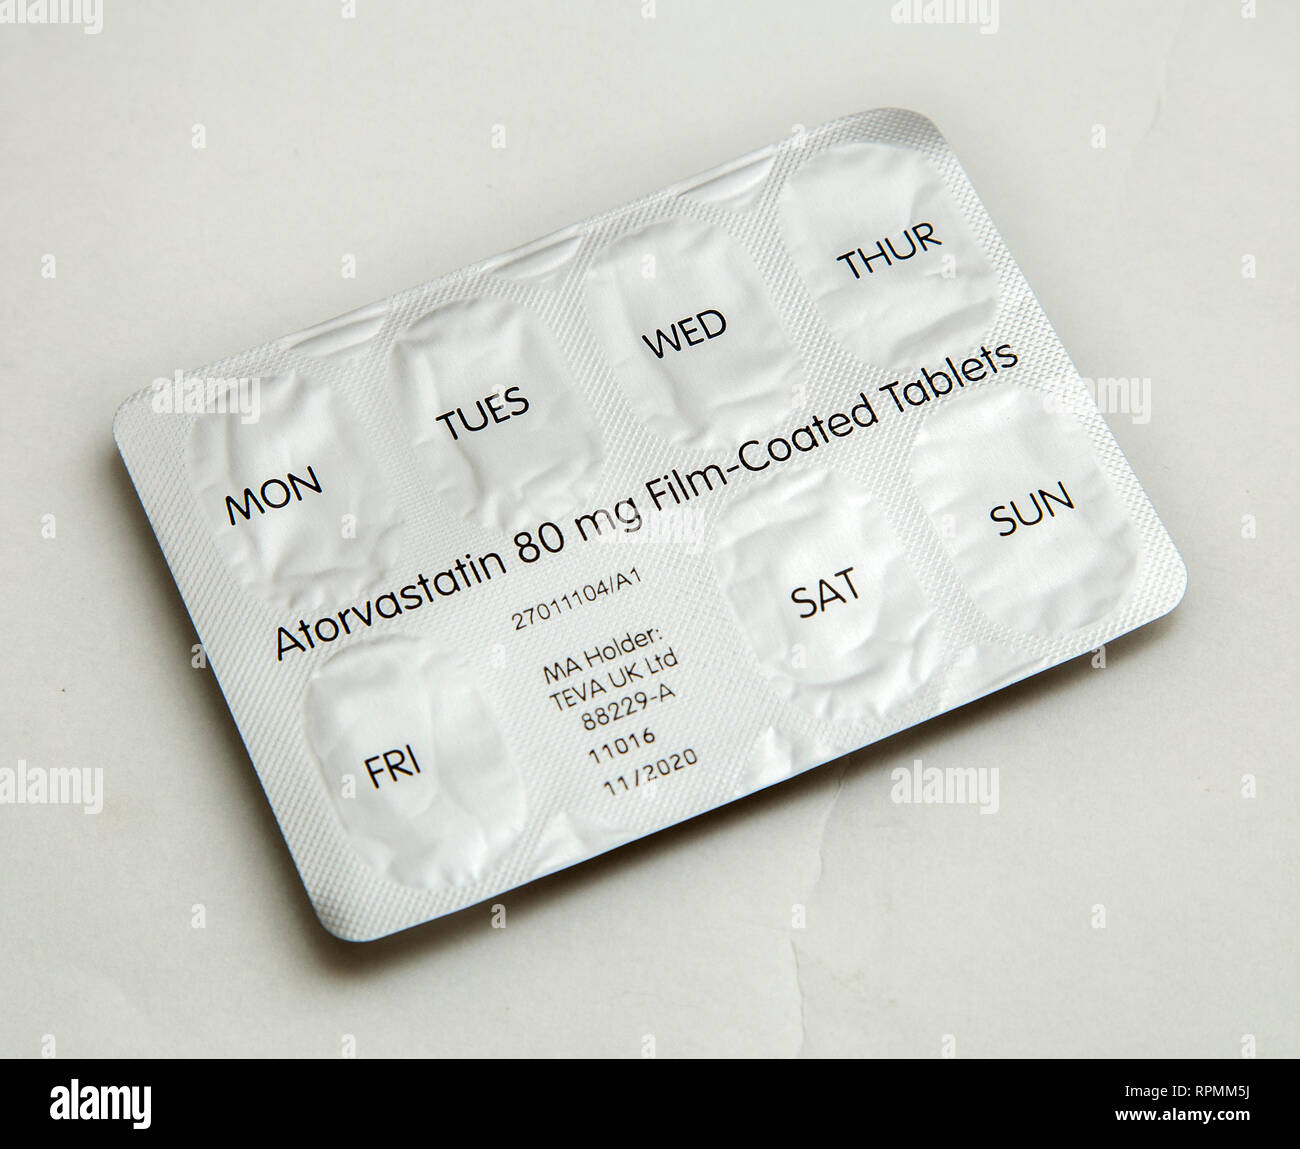 Calendar strip of Atorvastatin, a statin drug used to reduce the build up of cholesterol, prevent cardiovascular disease, and treat lipid levels. - Stock Image